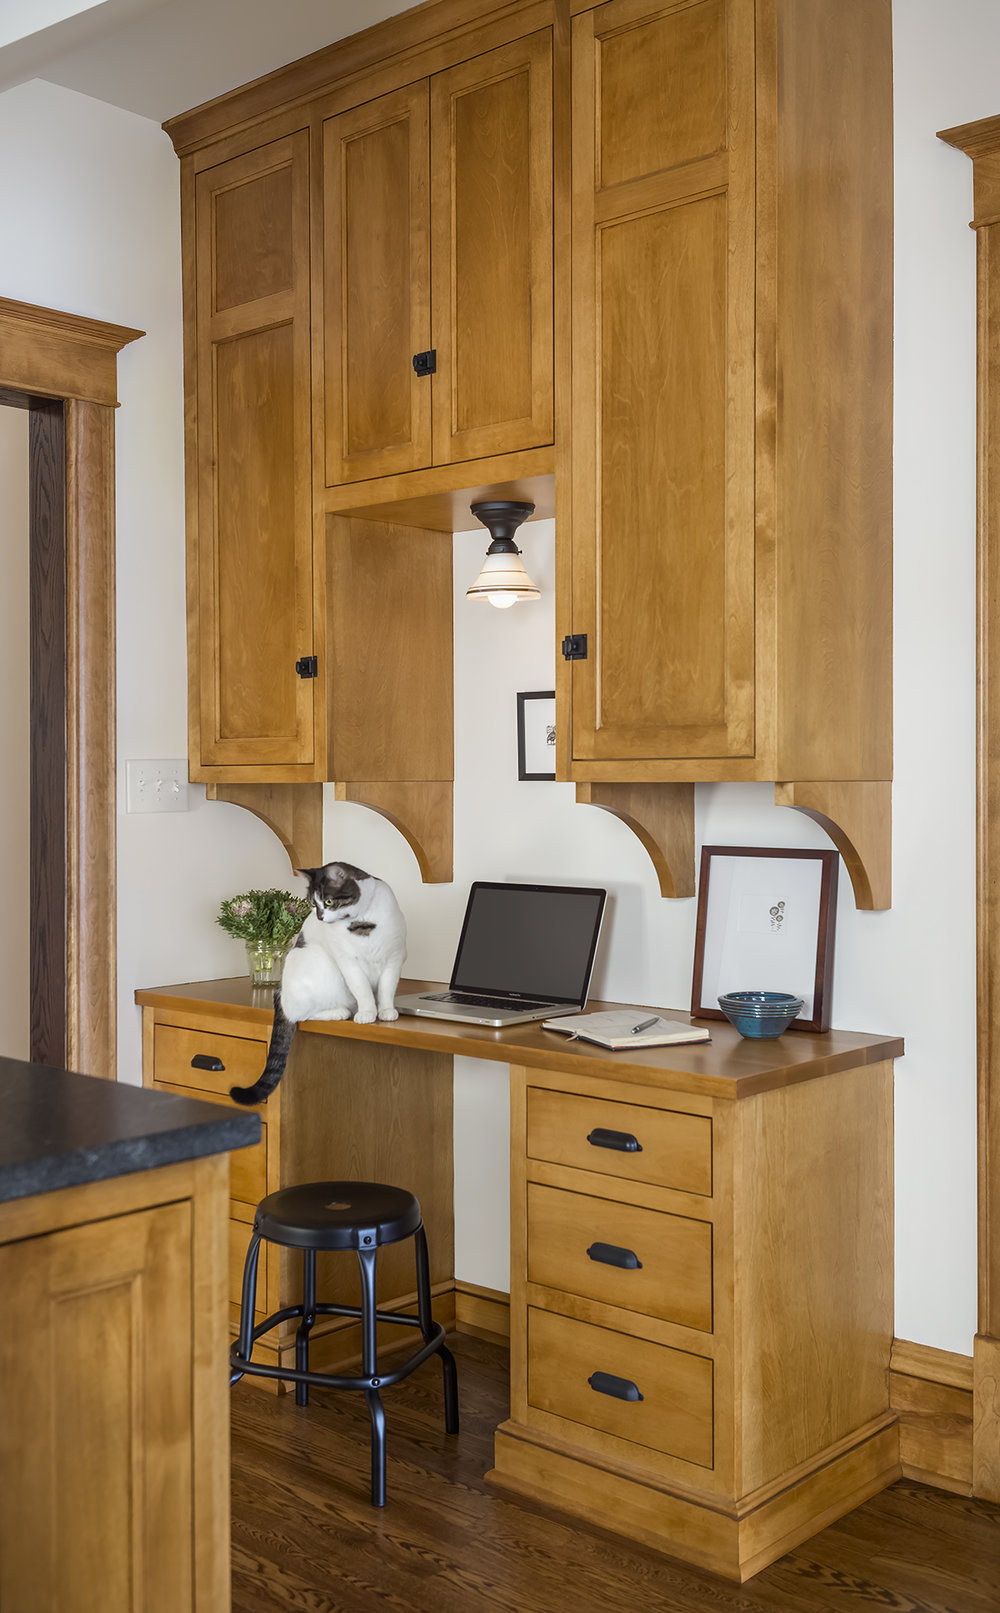 A new desk area and command center was added to the space to minimize clutter and chaos in other areas of the home. Additionally, a new door into the front room was created to ensure ease of flow throughout the first floor.